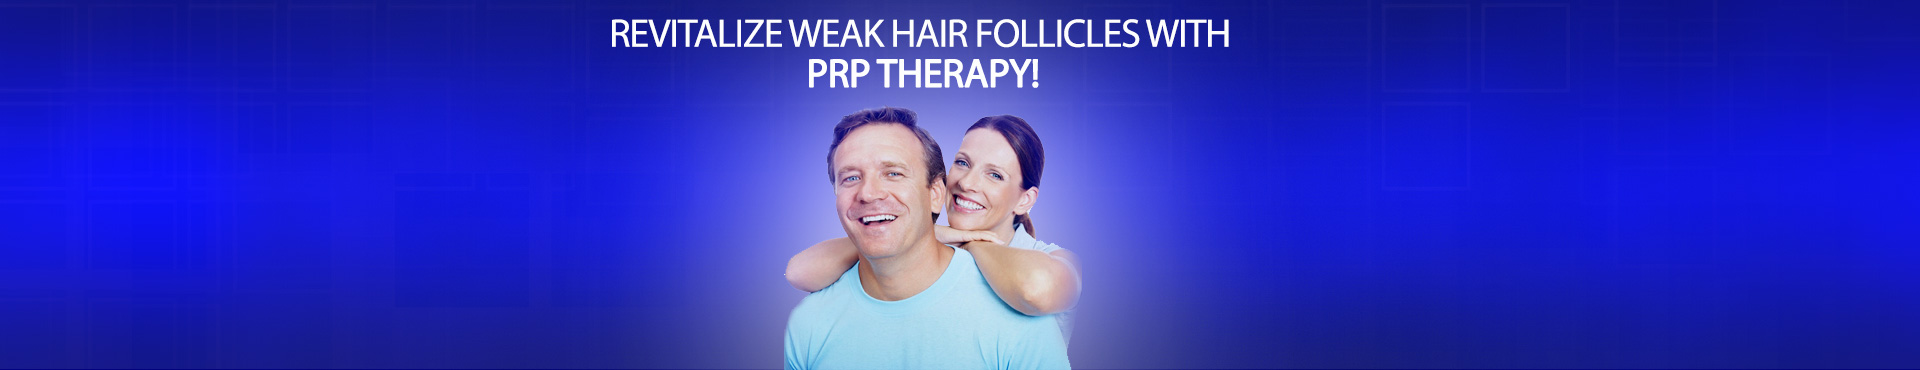 REVITALIZE WEAK HAIR FOLLICLES WITH PRP THERAPY!